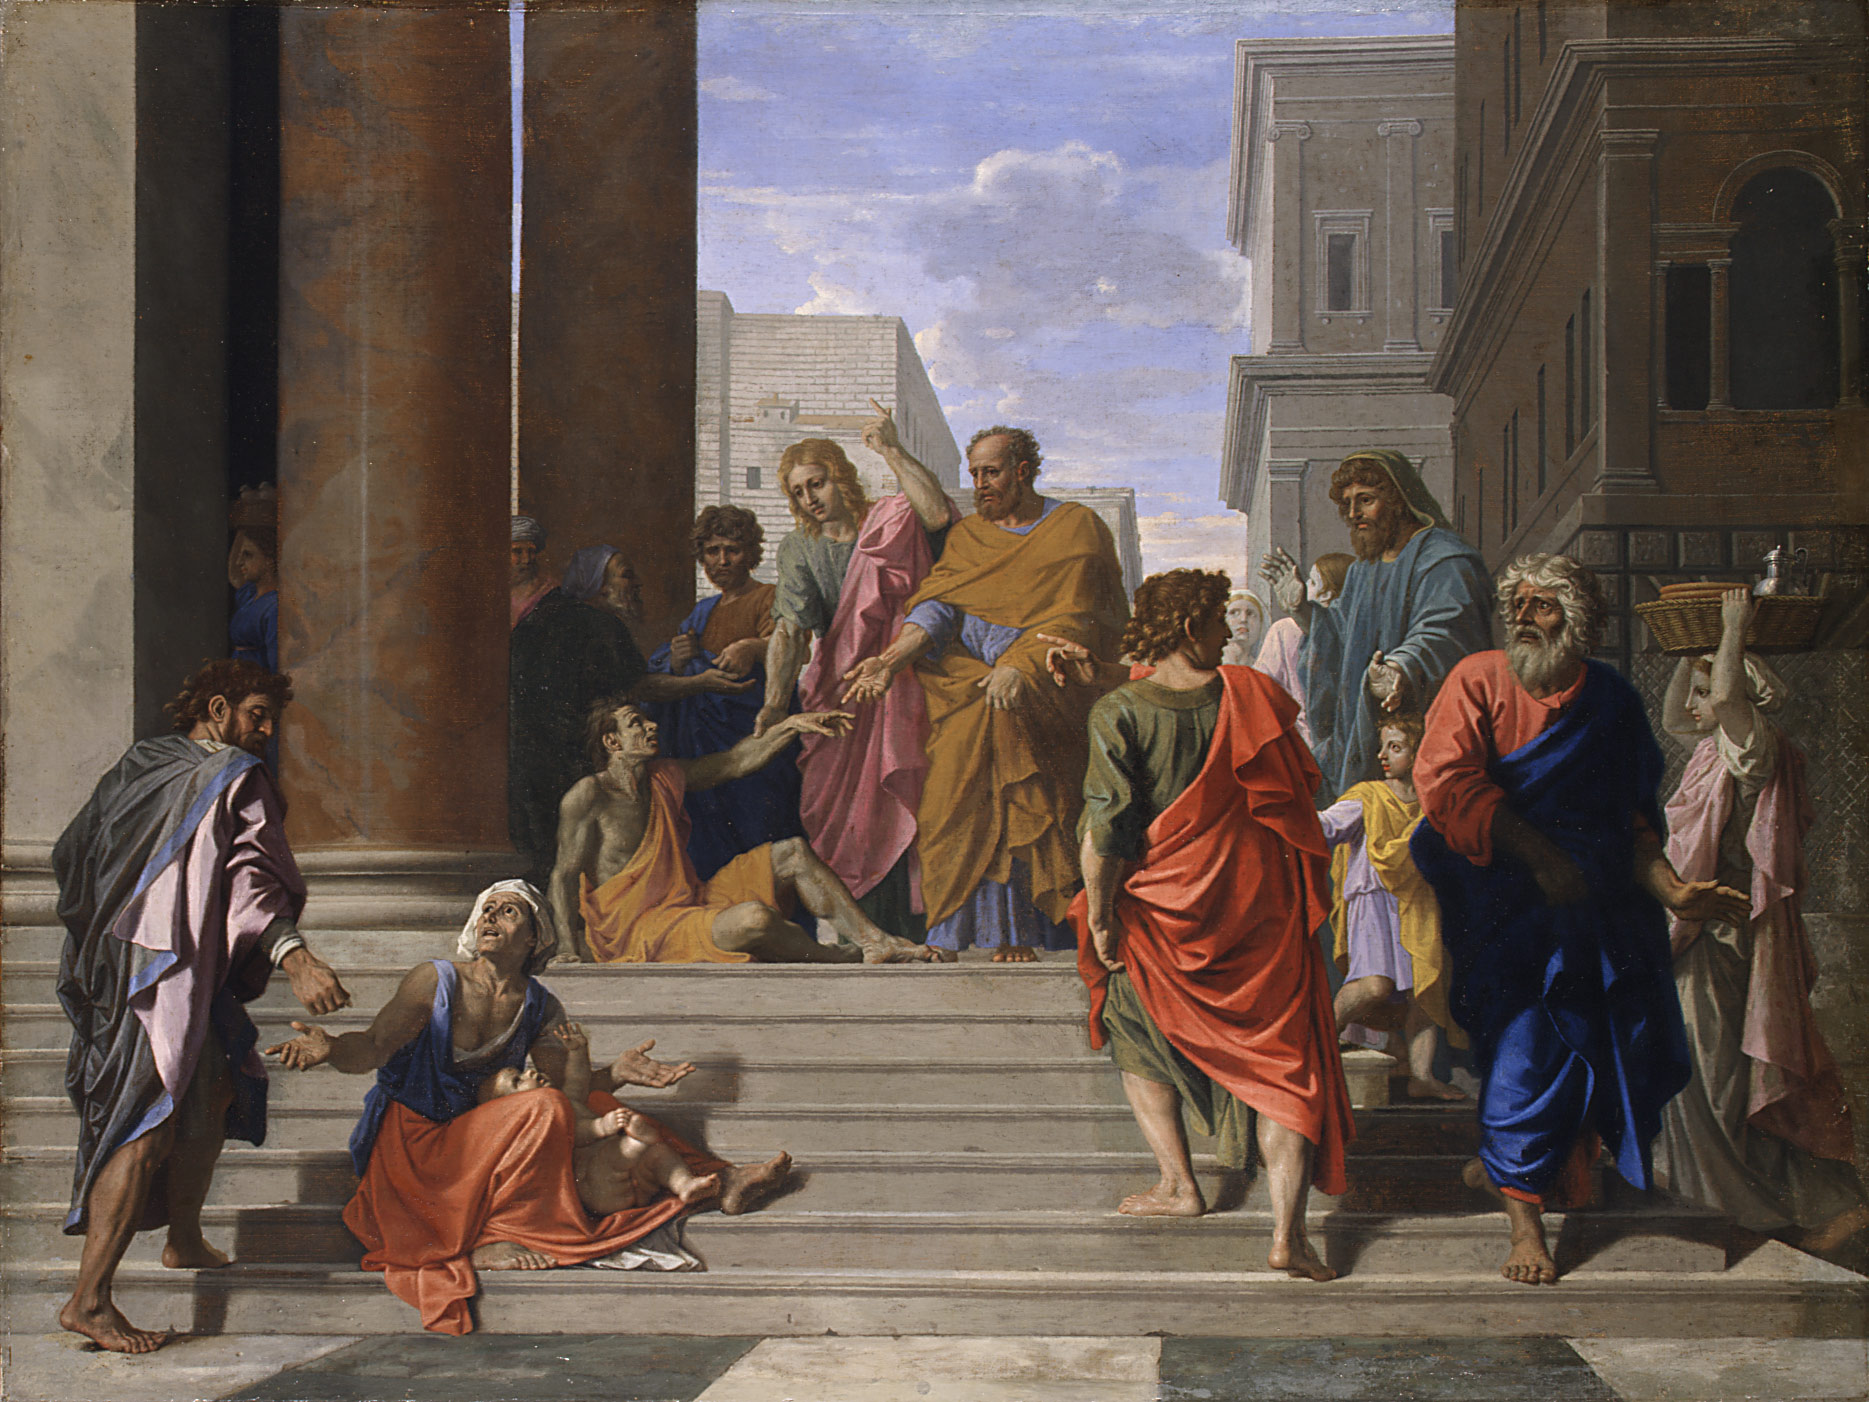 Peter Healing the Man at Temple